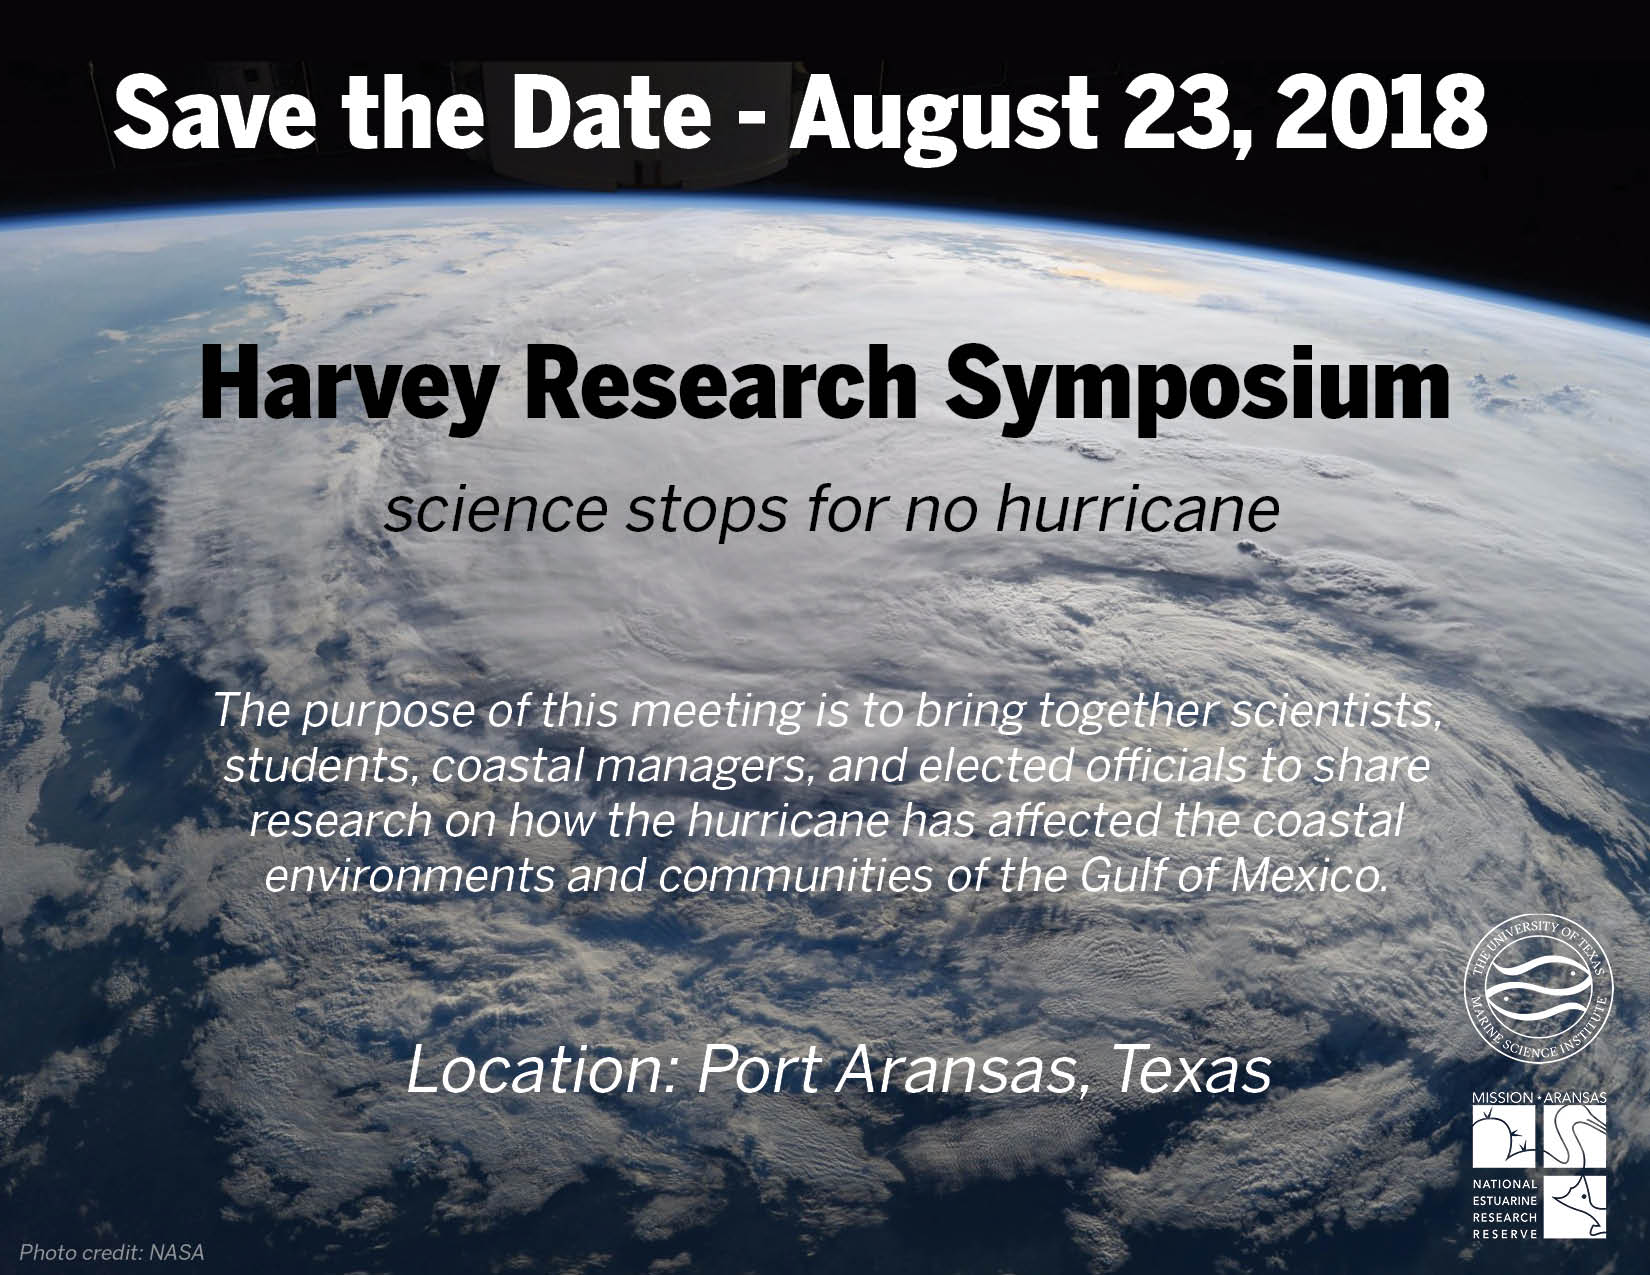 HarveyResSymposium SaveTheDate